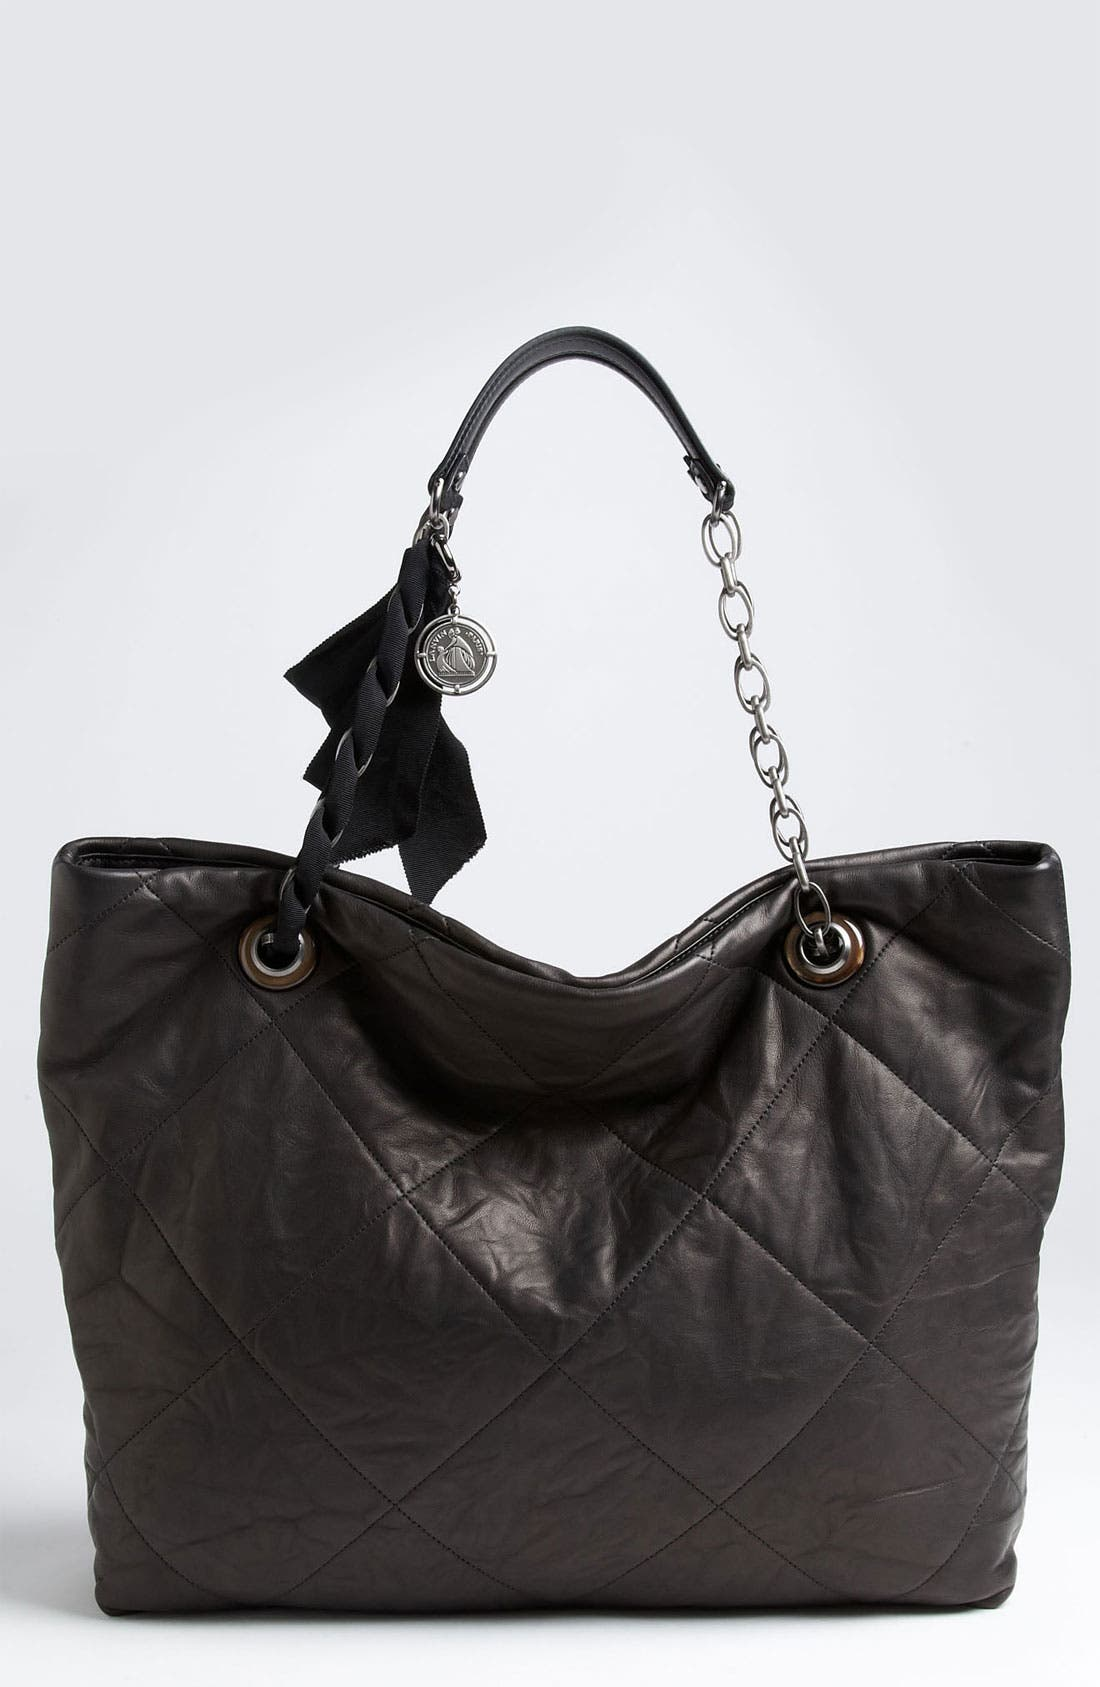 Main Image - Lanvin 'Amalia Cabas - Large' Leather Tote